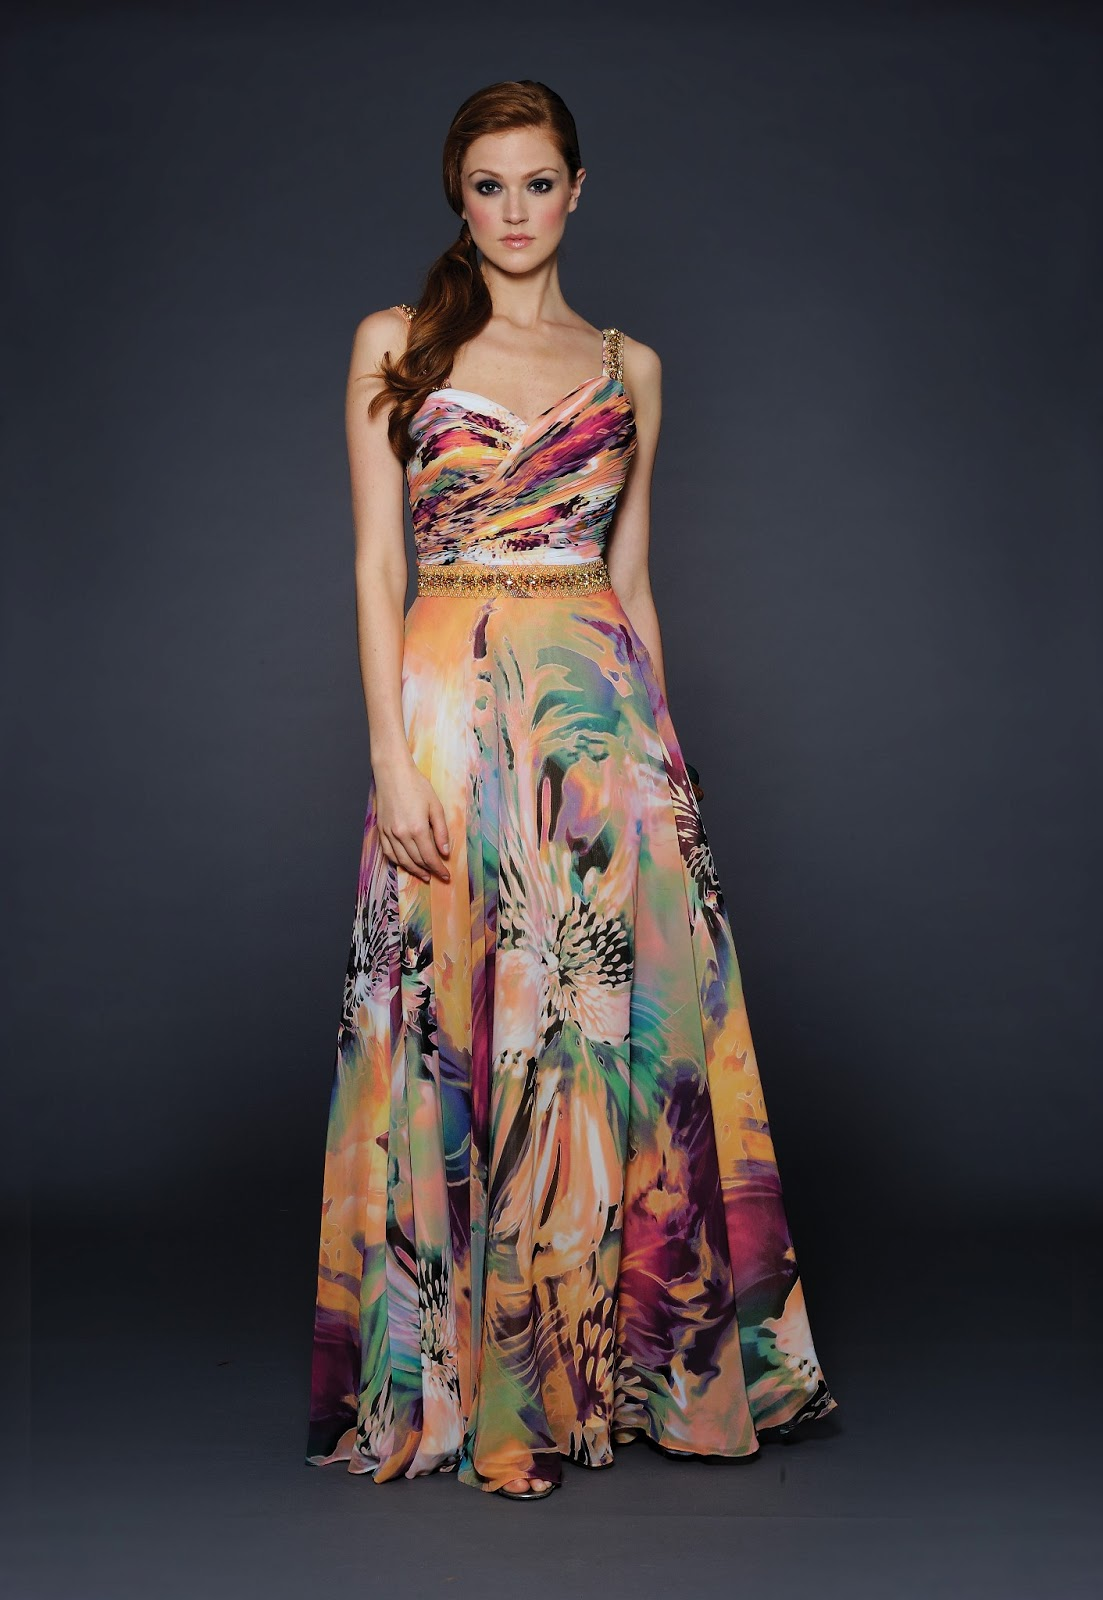 Long floral dress for wedding  MARIA ROJAS mariarojas on Pinterest